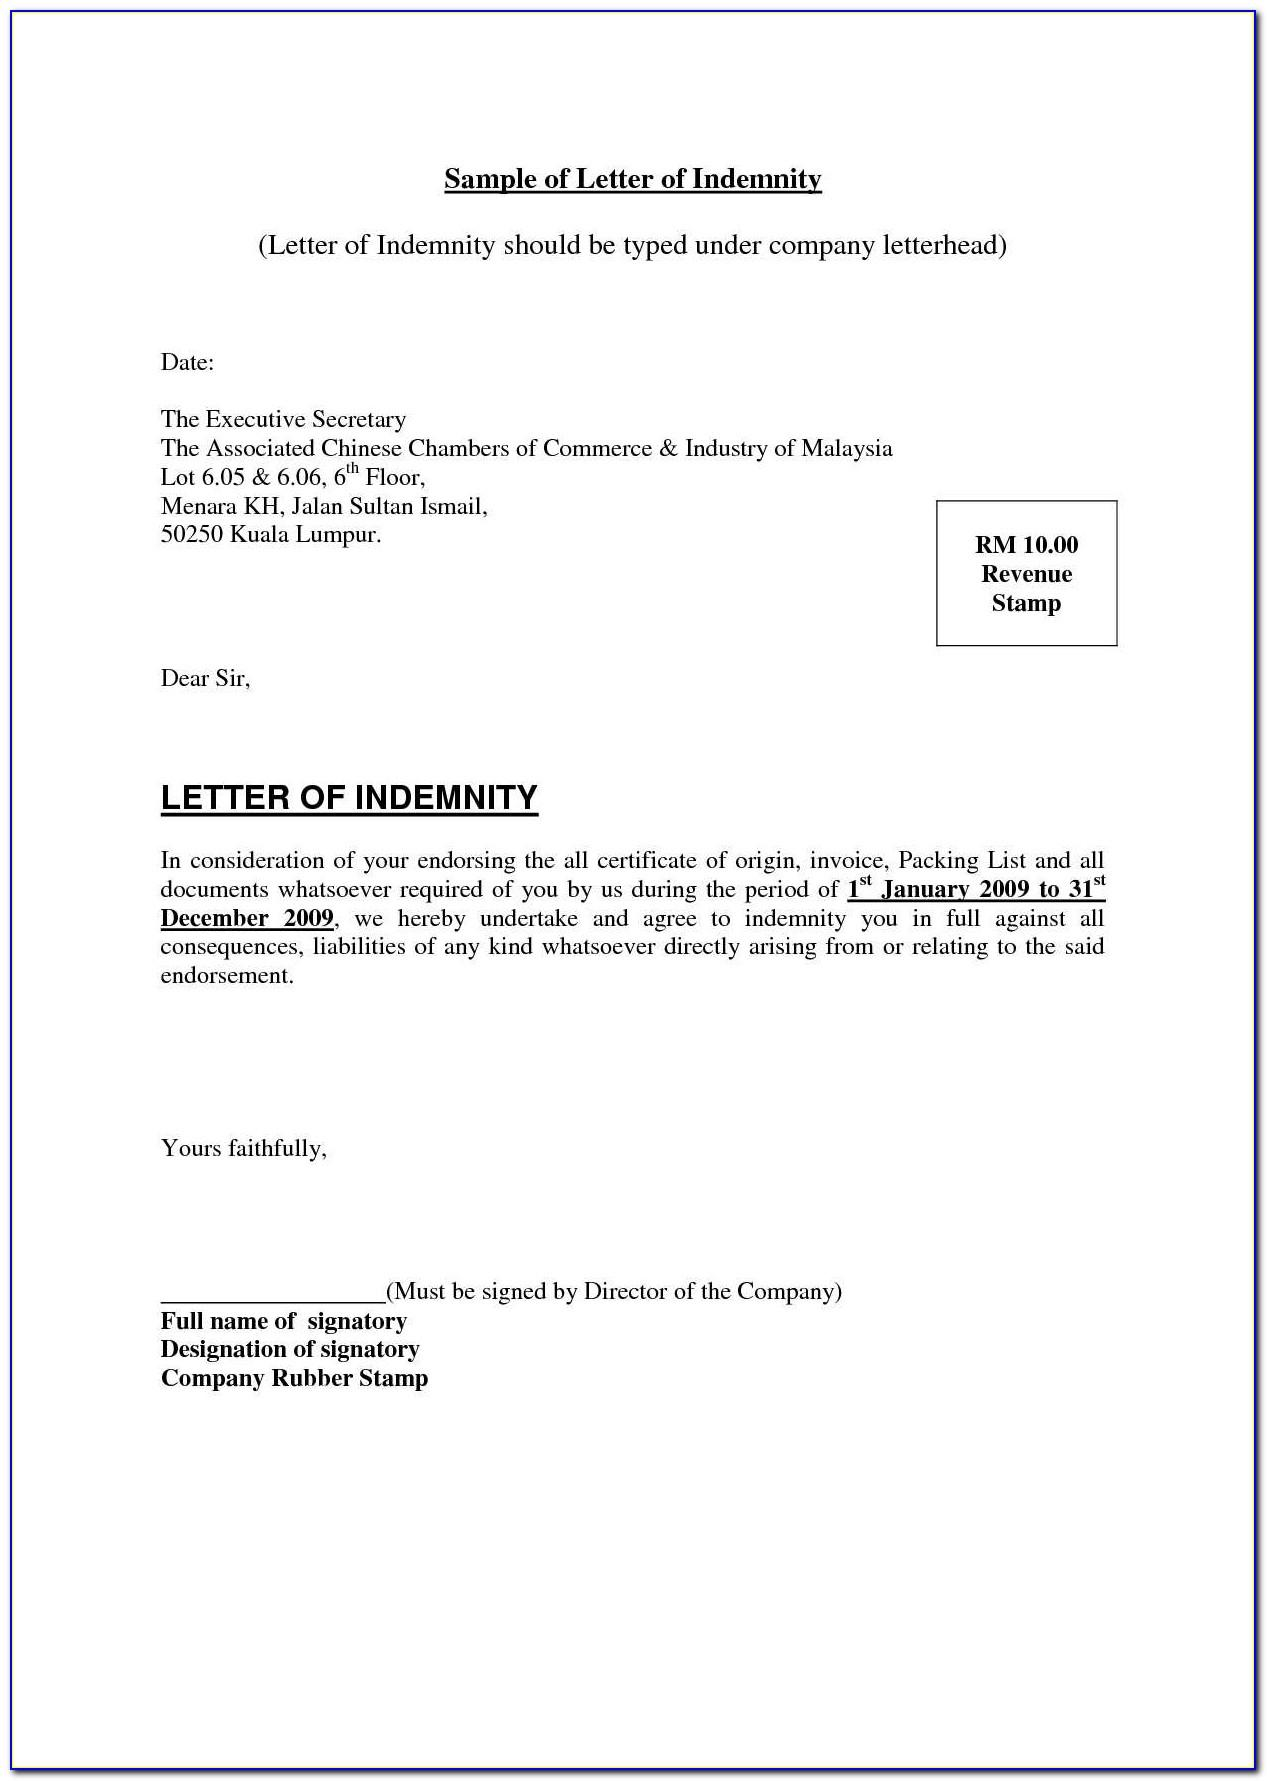 Letter Of Indemnity Sample For Shipping